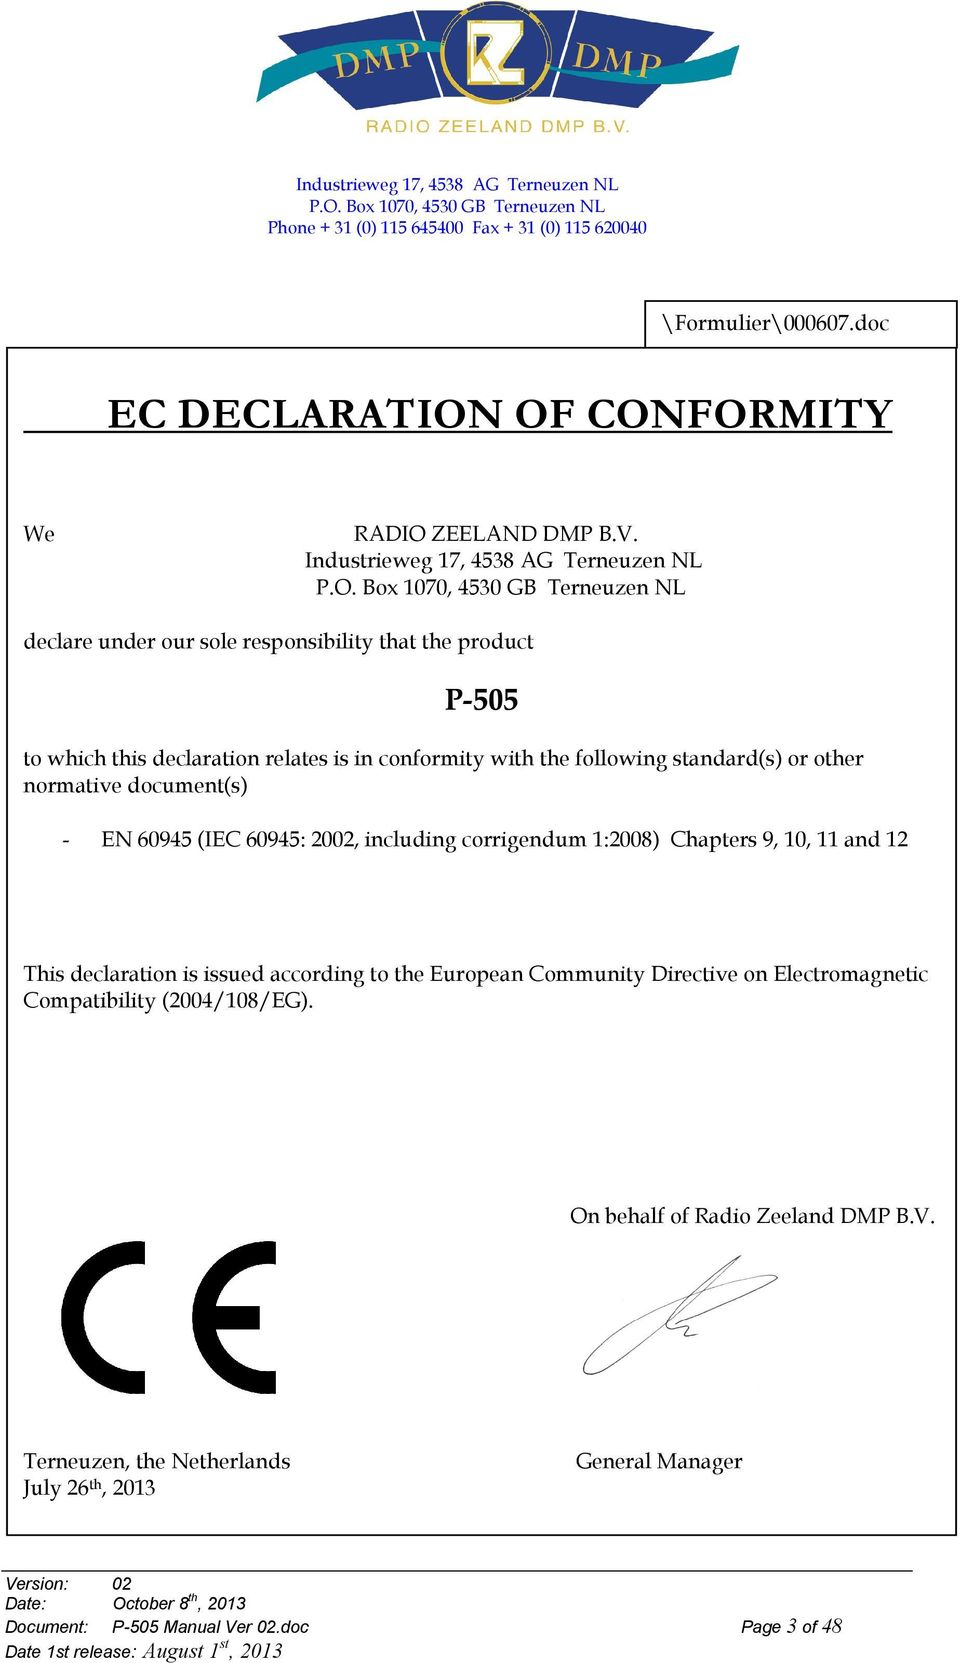 Box 1070, 4530 GB Terneuzen NL declare under our sole responsibility that the product P-505 to which this declaration relates is in conformity with the following standard(s) or other normative